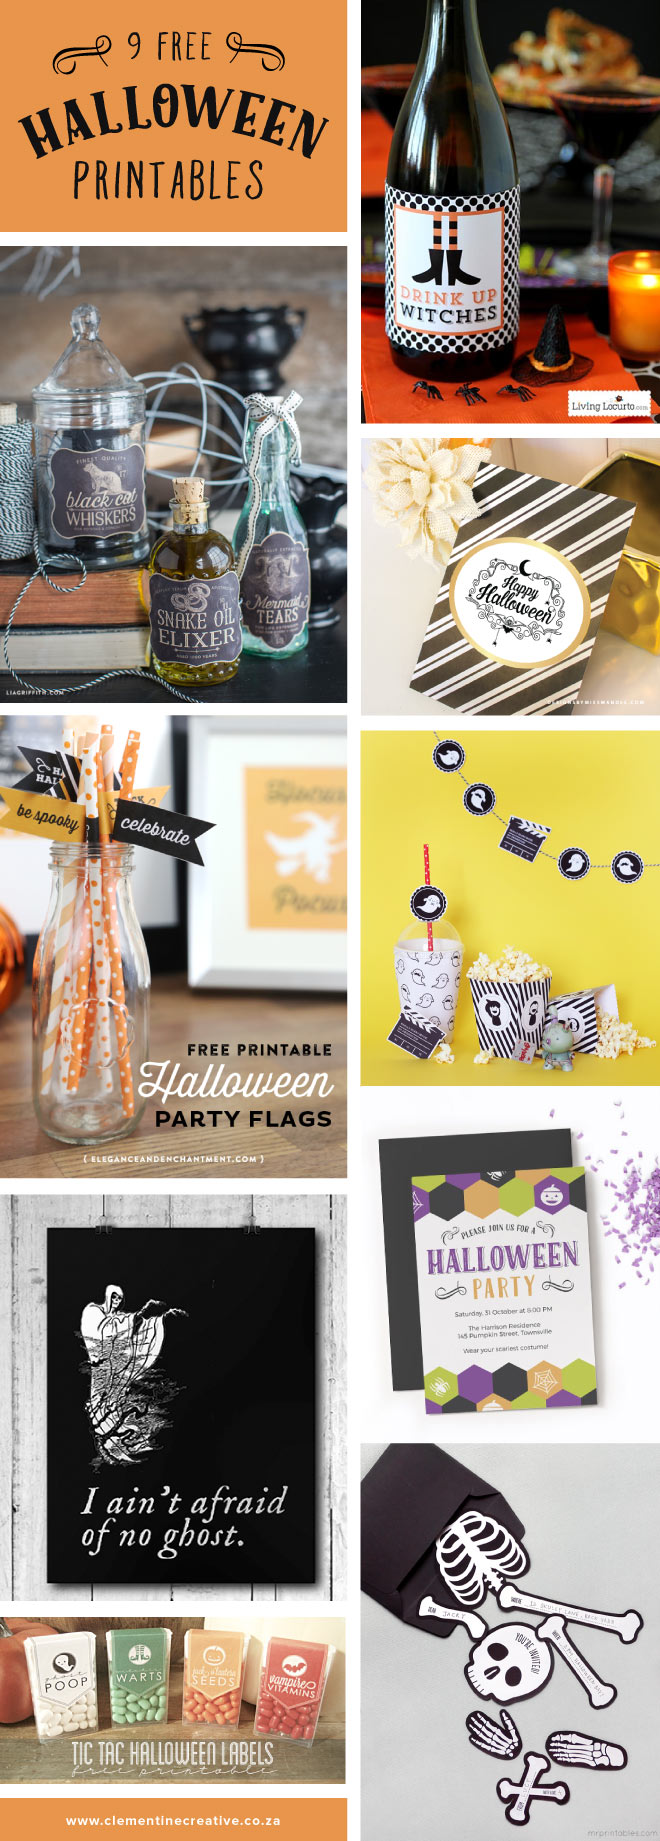 9 stunning Halloween party printables that are free to download!